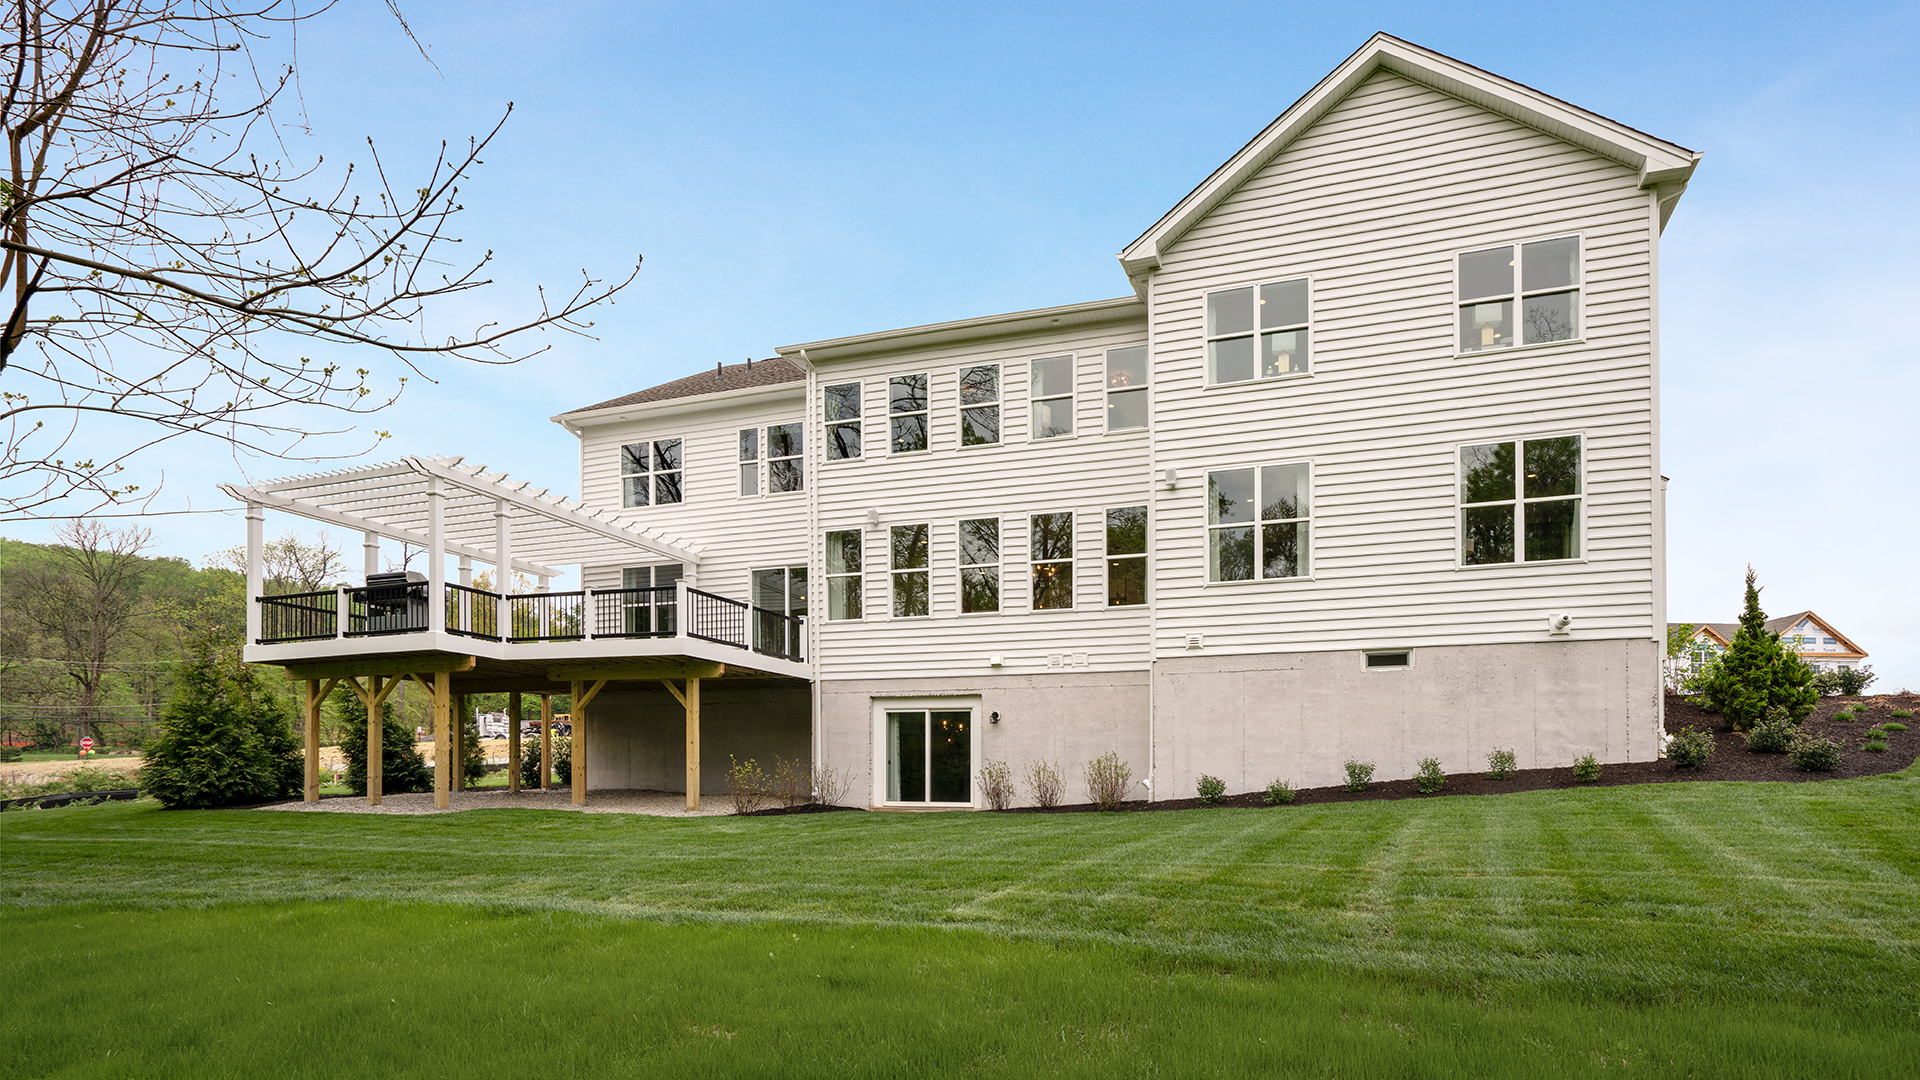 New Luxury Homes For Sale in Glen Mills, PA | Taylor Mill at